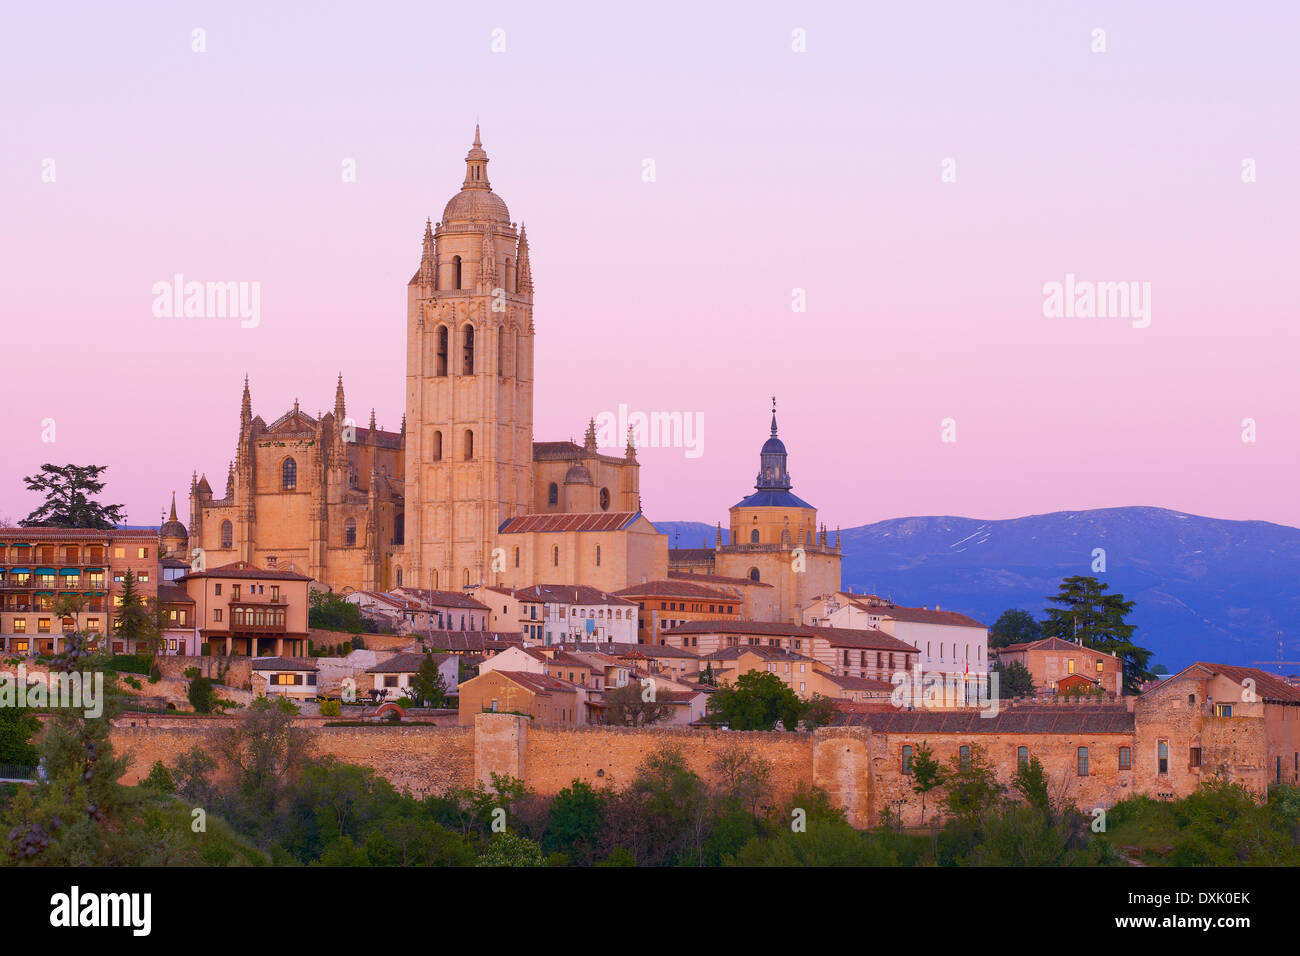 Cathedral, Segovia, Cathedral at Sunset, Castilla-León, Spain - Stock Image